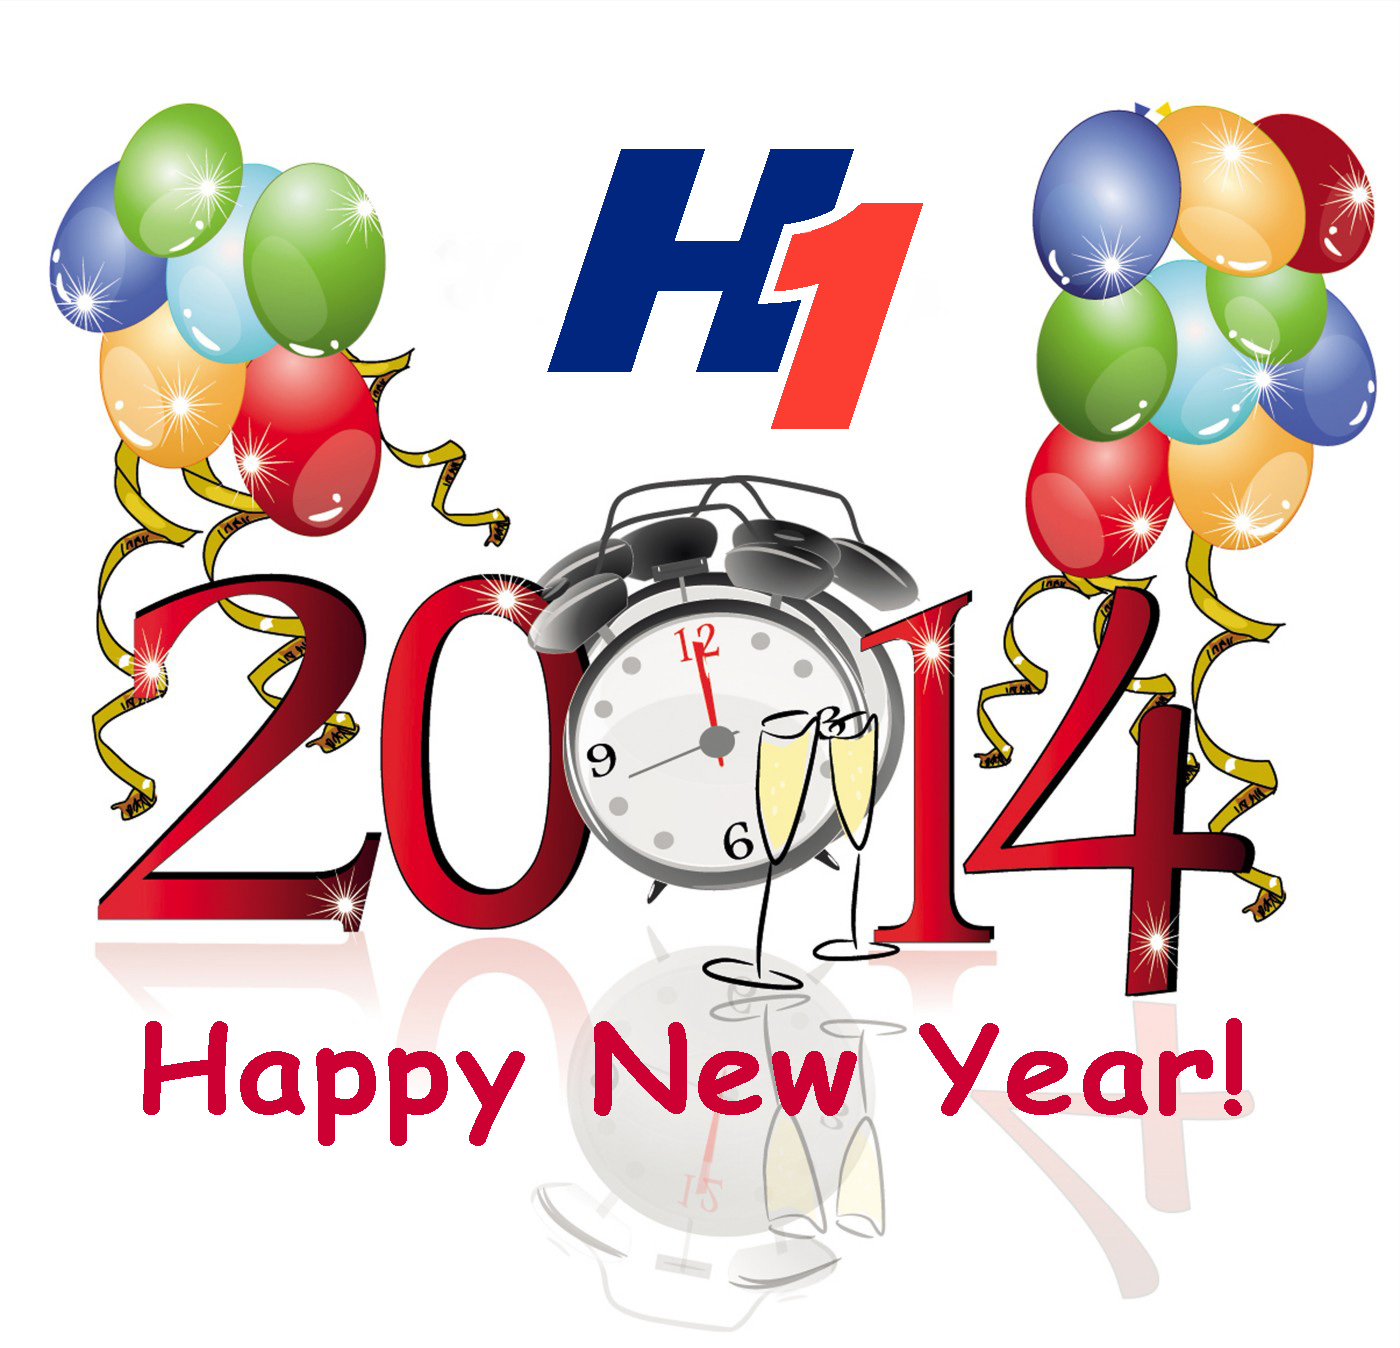 Happy New Year from H1